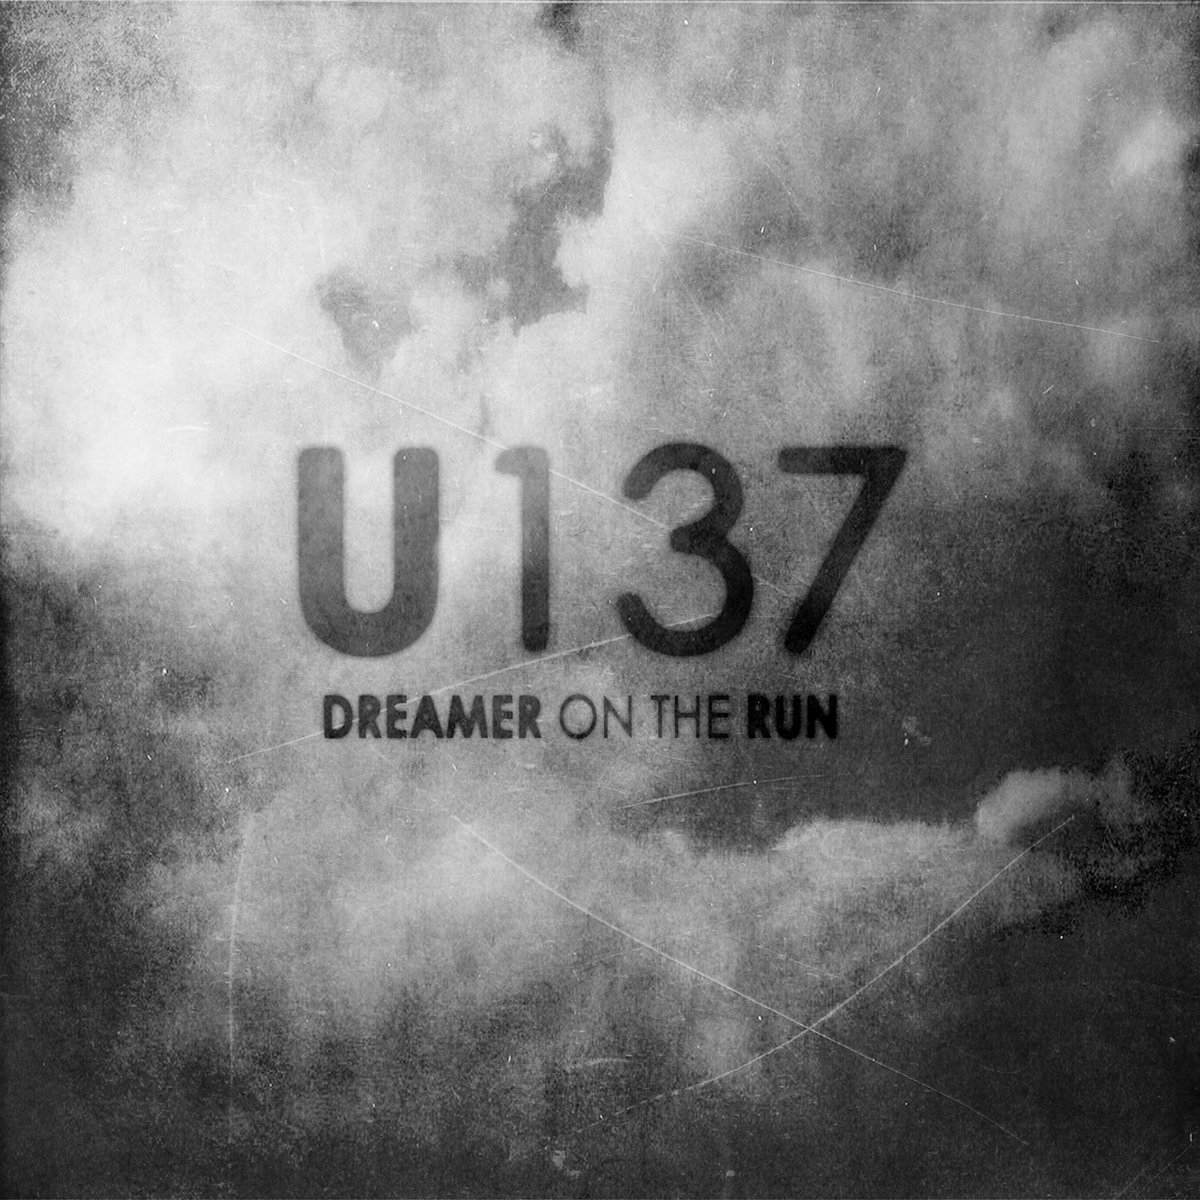 U137 - Dreamer on the run